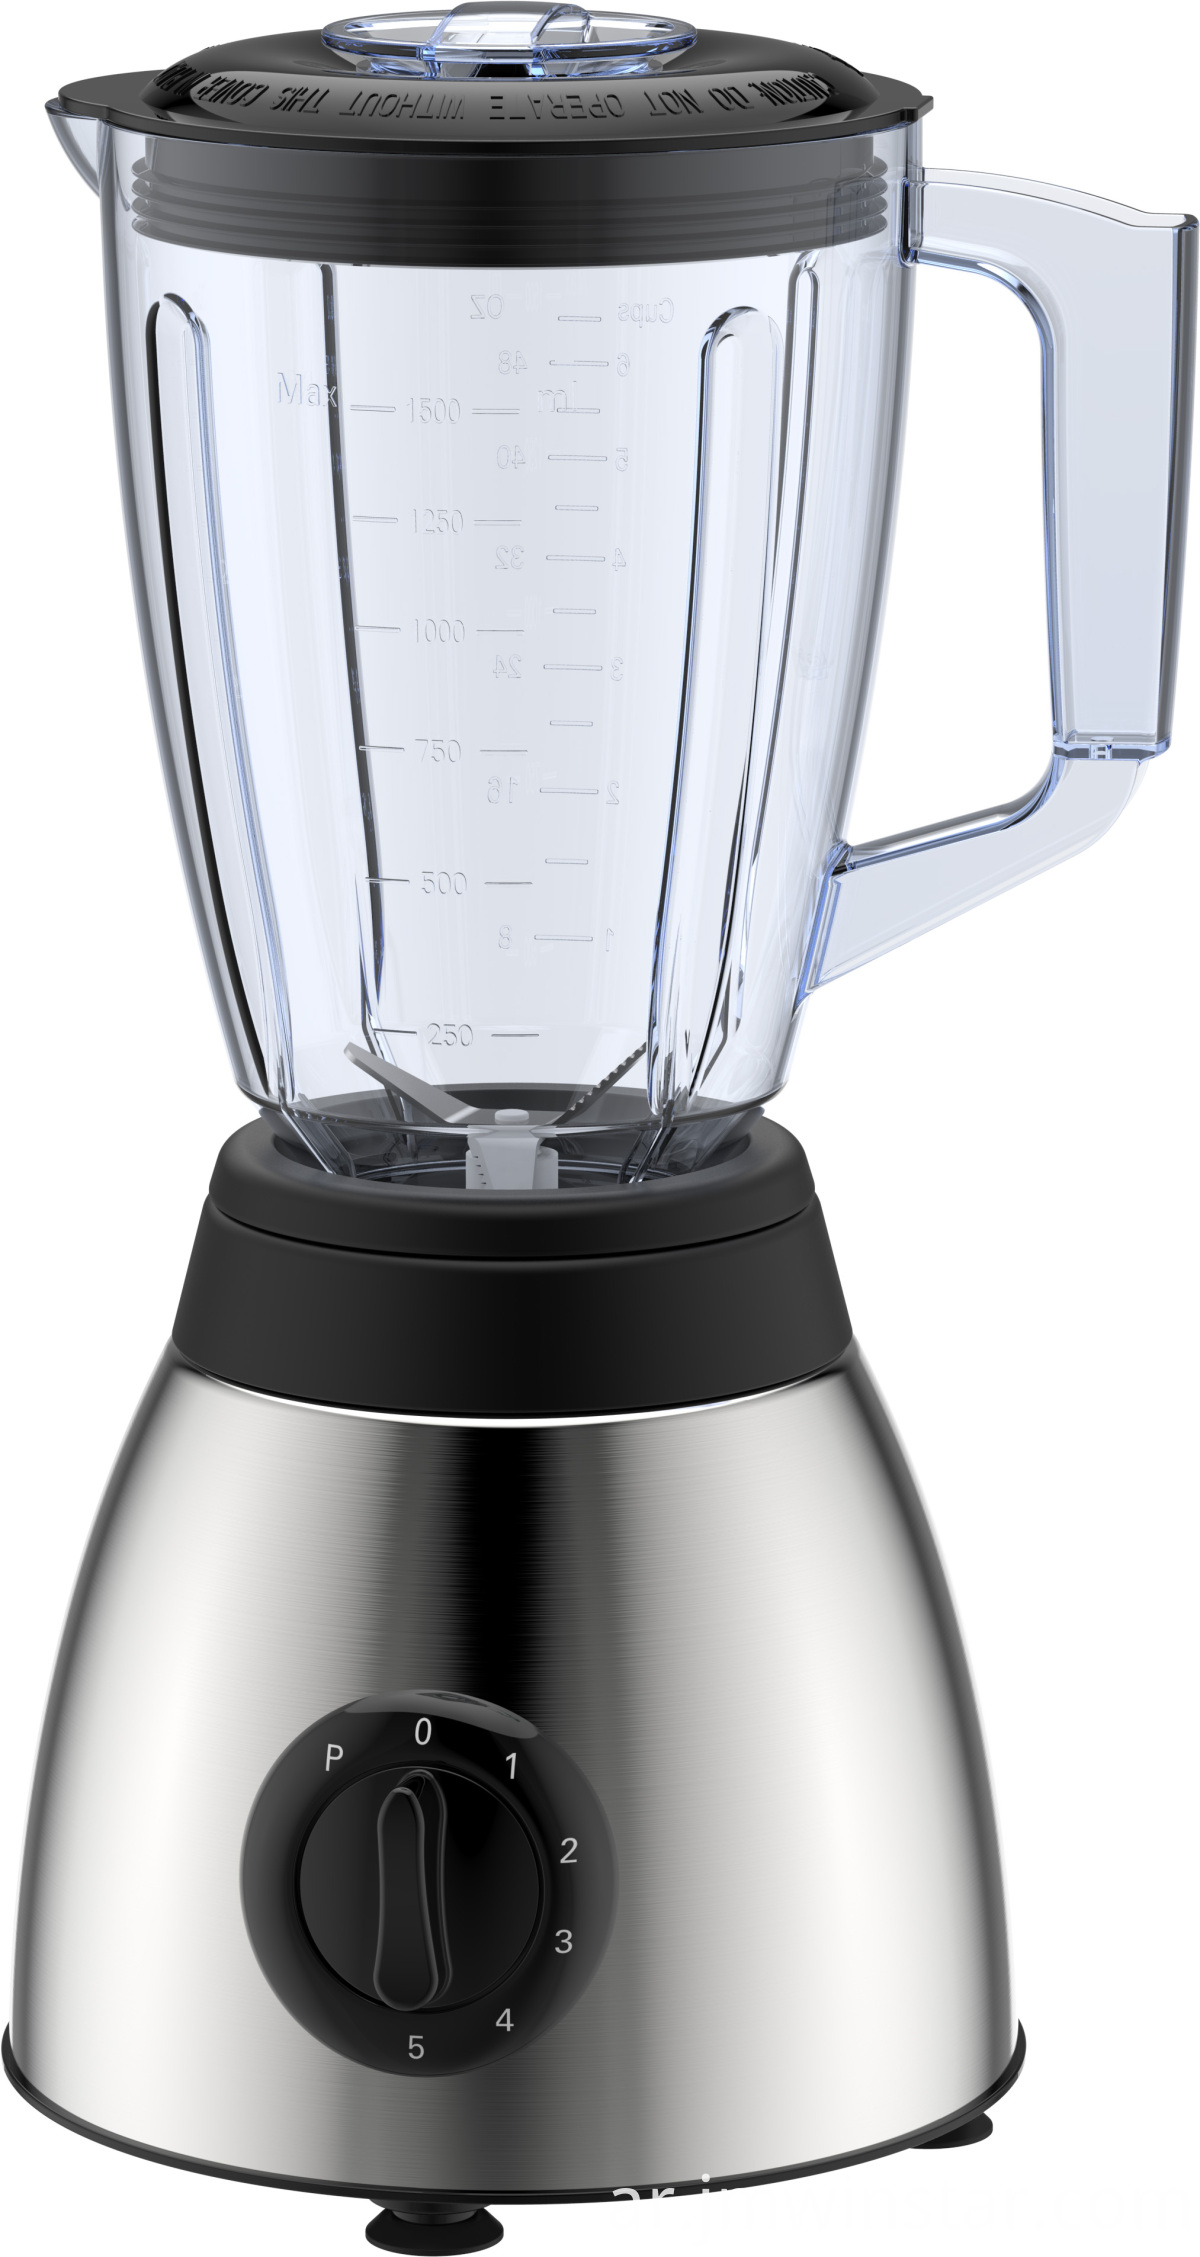 Five Speeds Blender